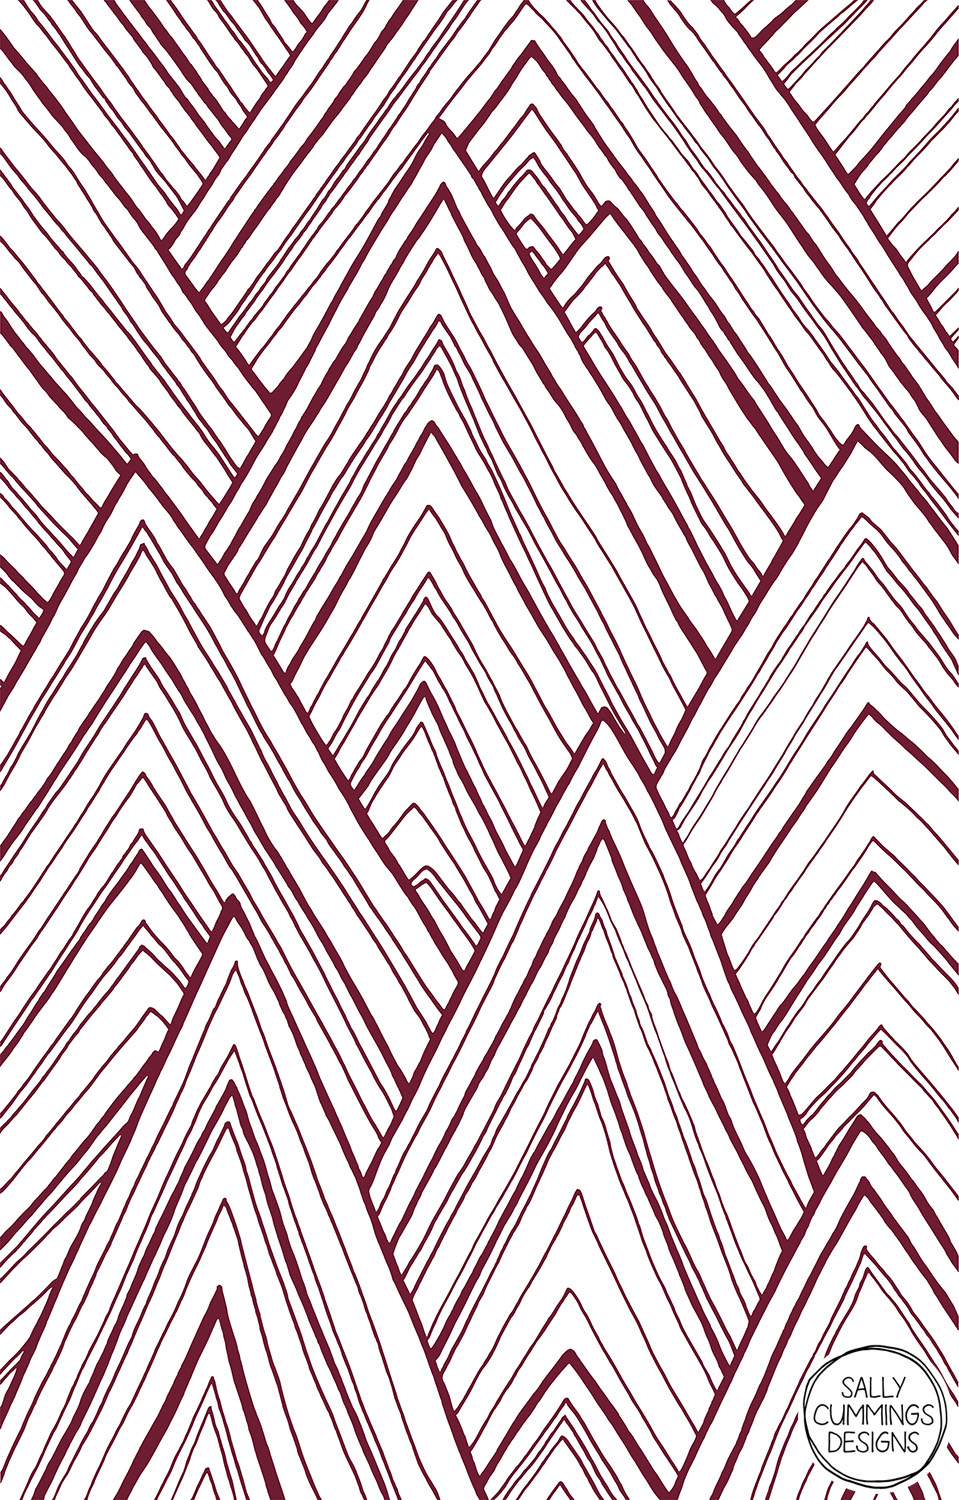 Sally Cummings Designs - Stripe Mountains design (maroon)